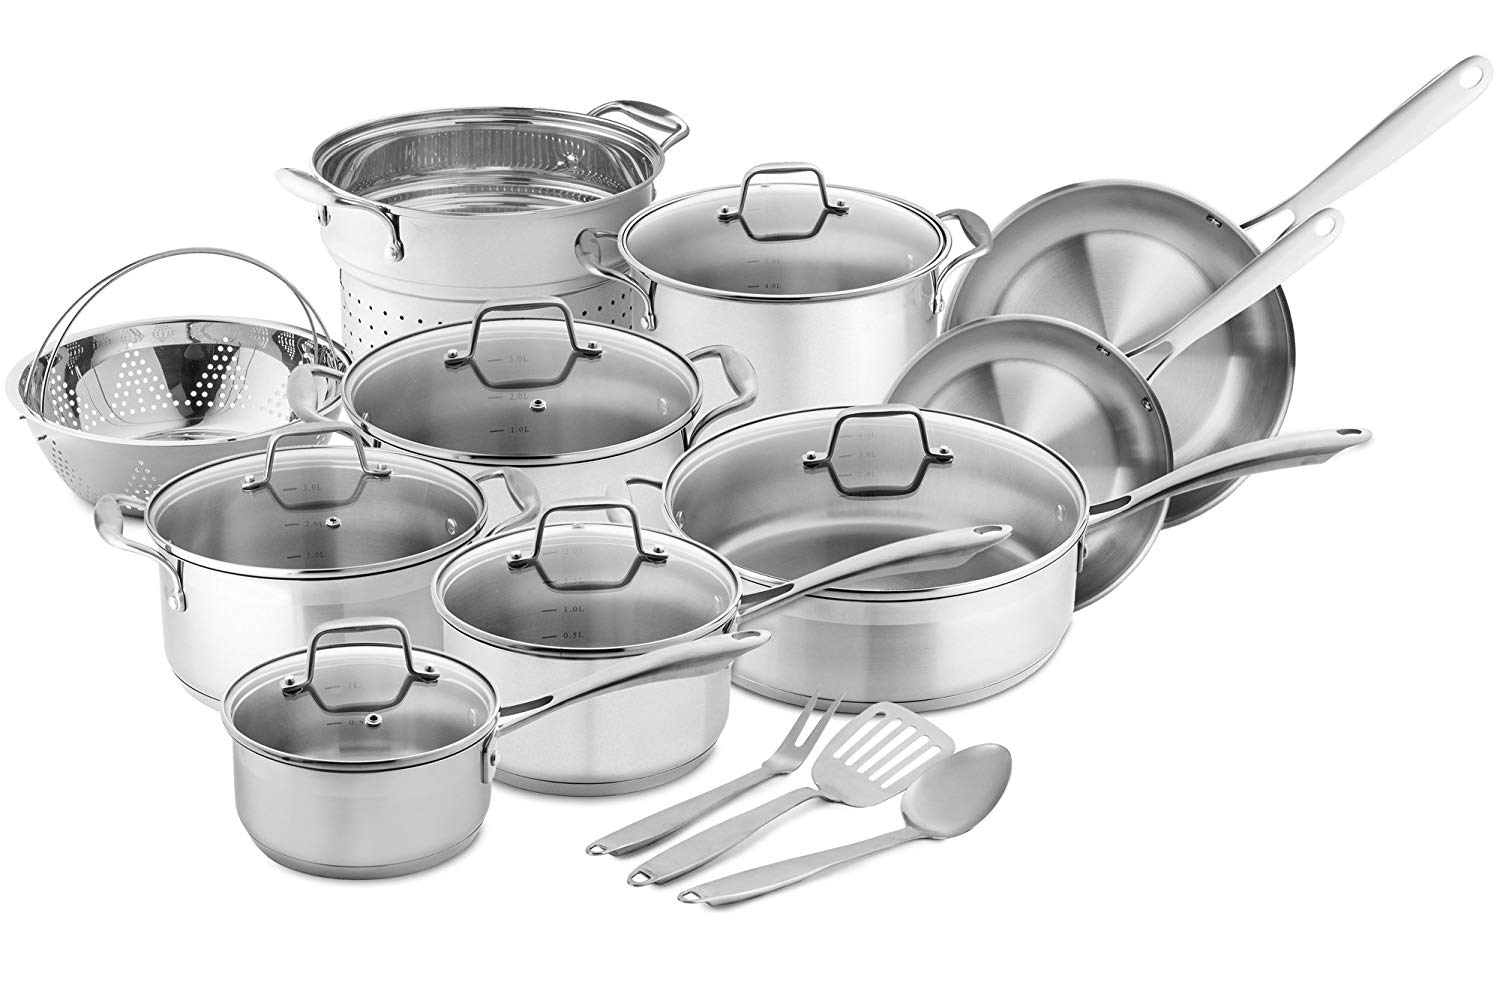 Chef's Star 17-Piece Pots and Pans Stainless Steel Induction Cookware